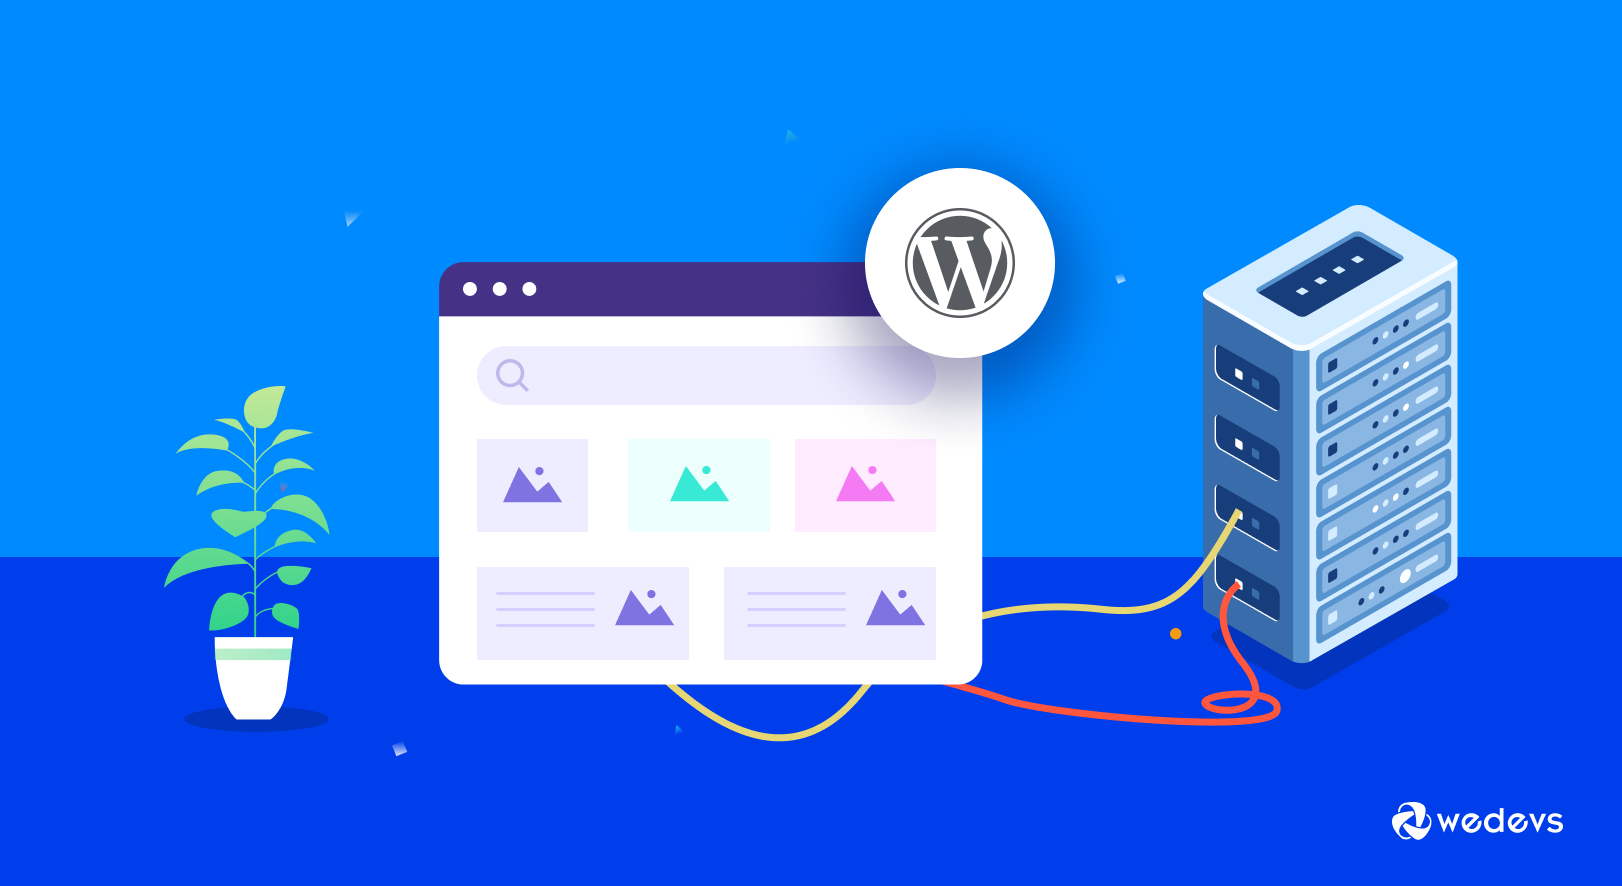 6 Things To Consider When Selecting a WordPress Hosting for Your Business